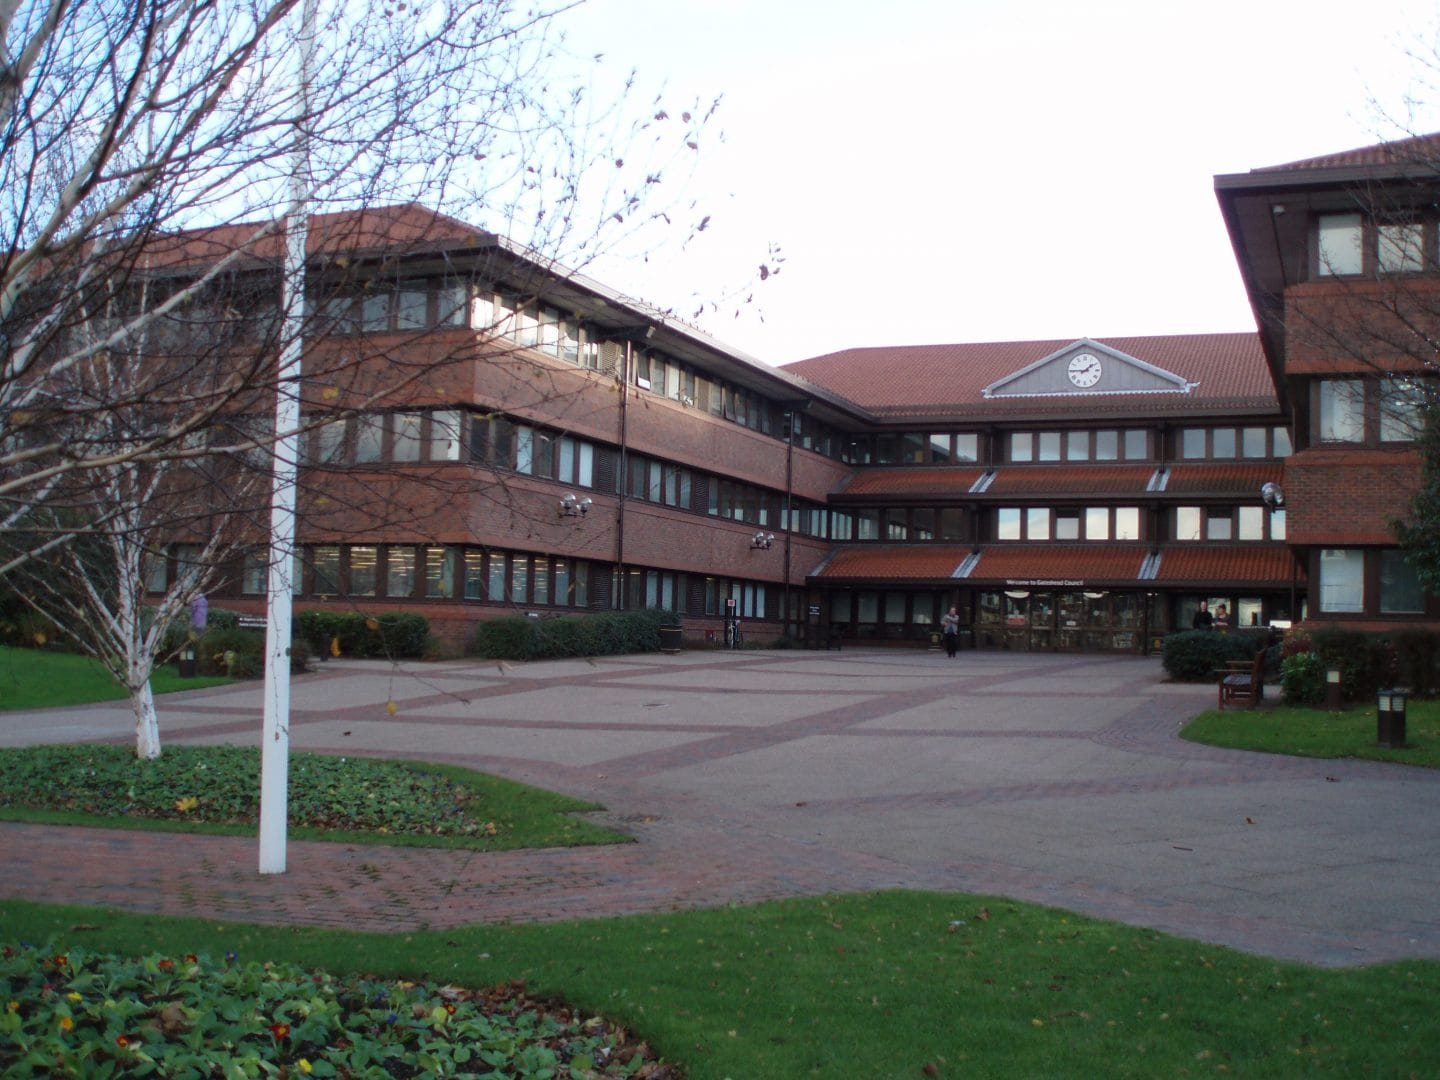 Gateshead Housing, Civic Centre, Gateshead